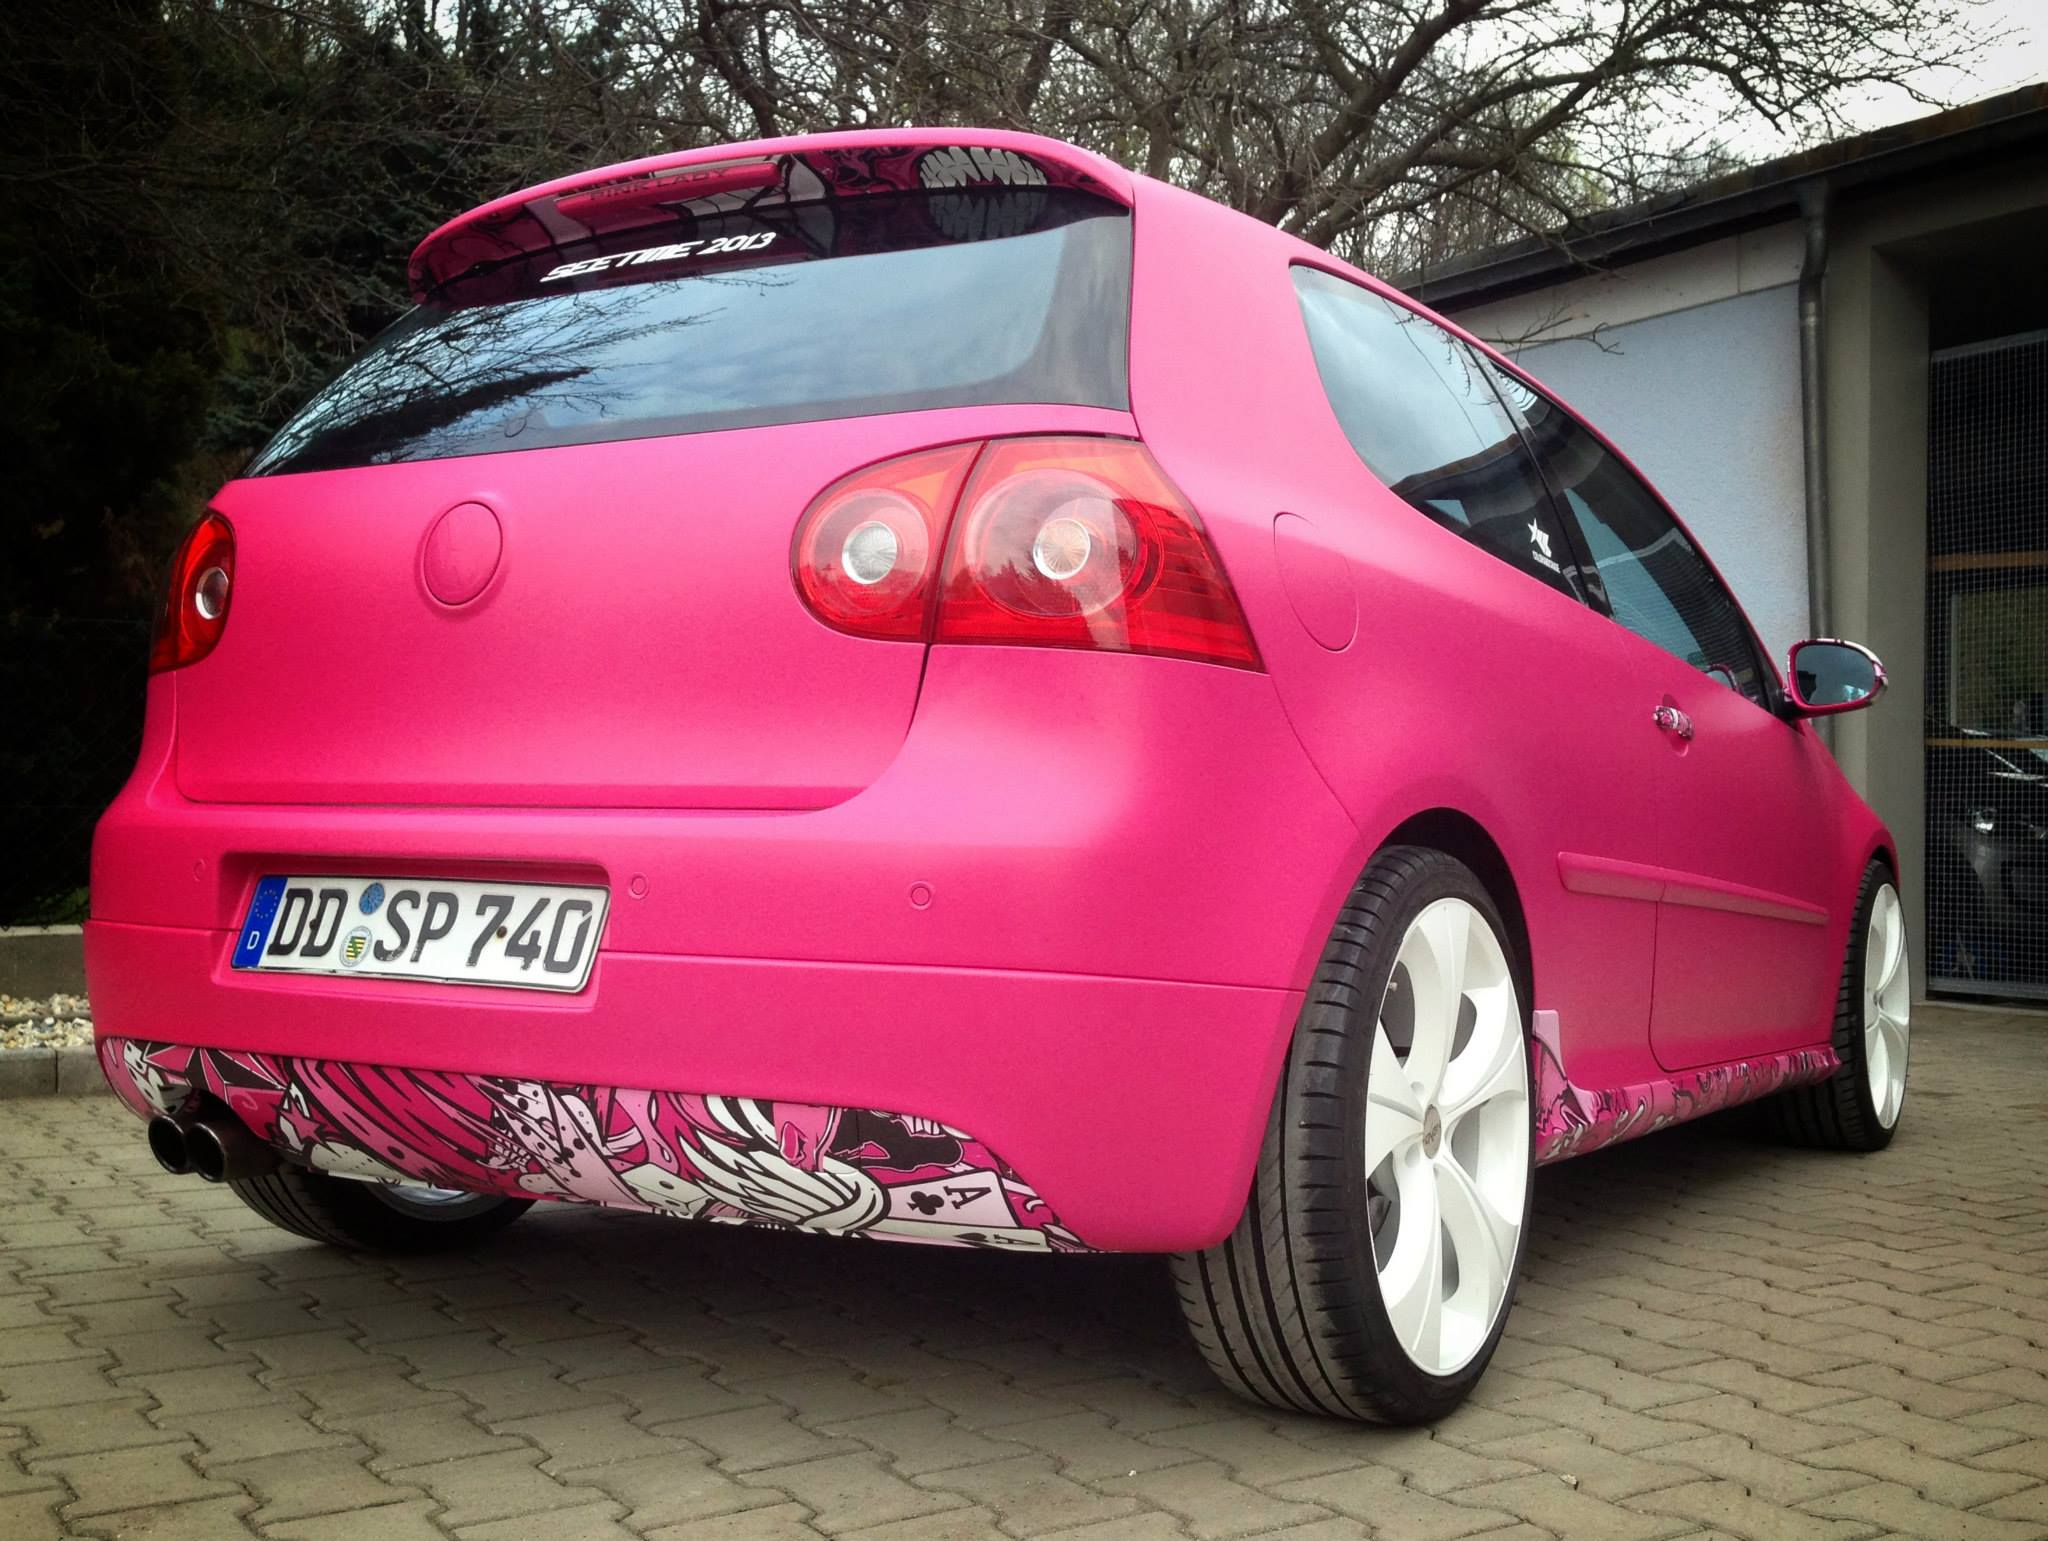 VW Golf For Sale >> Yes, This Is a Pink VW Golf GTI! - autoevolution